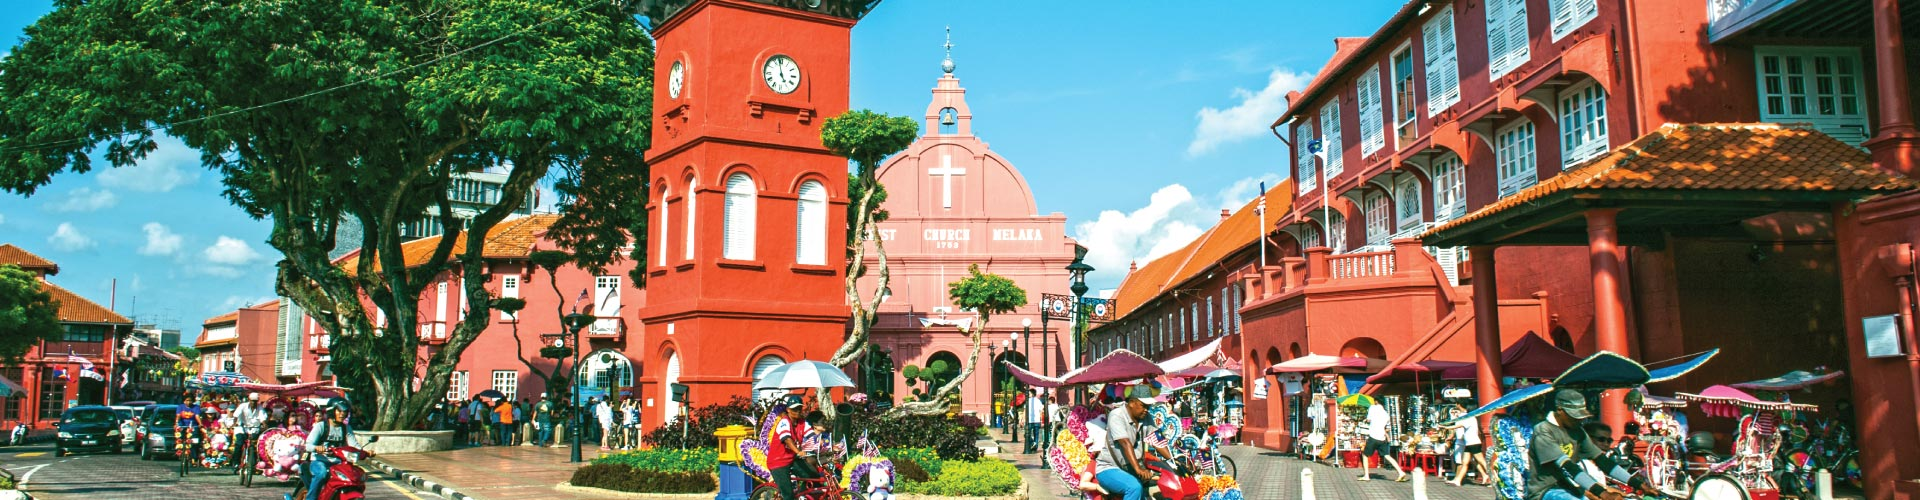 Cruise - 4d3n Port Klang & Malacca Cruise (Royal Caribbean)* - Sea2esbcr04kh - R7